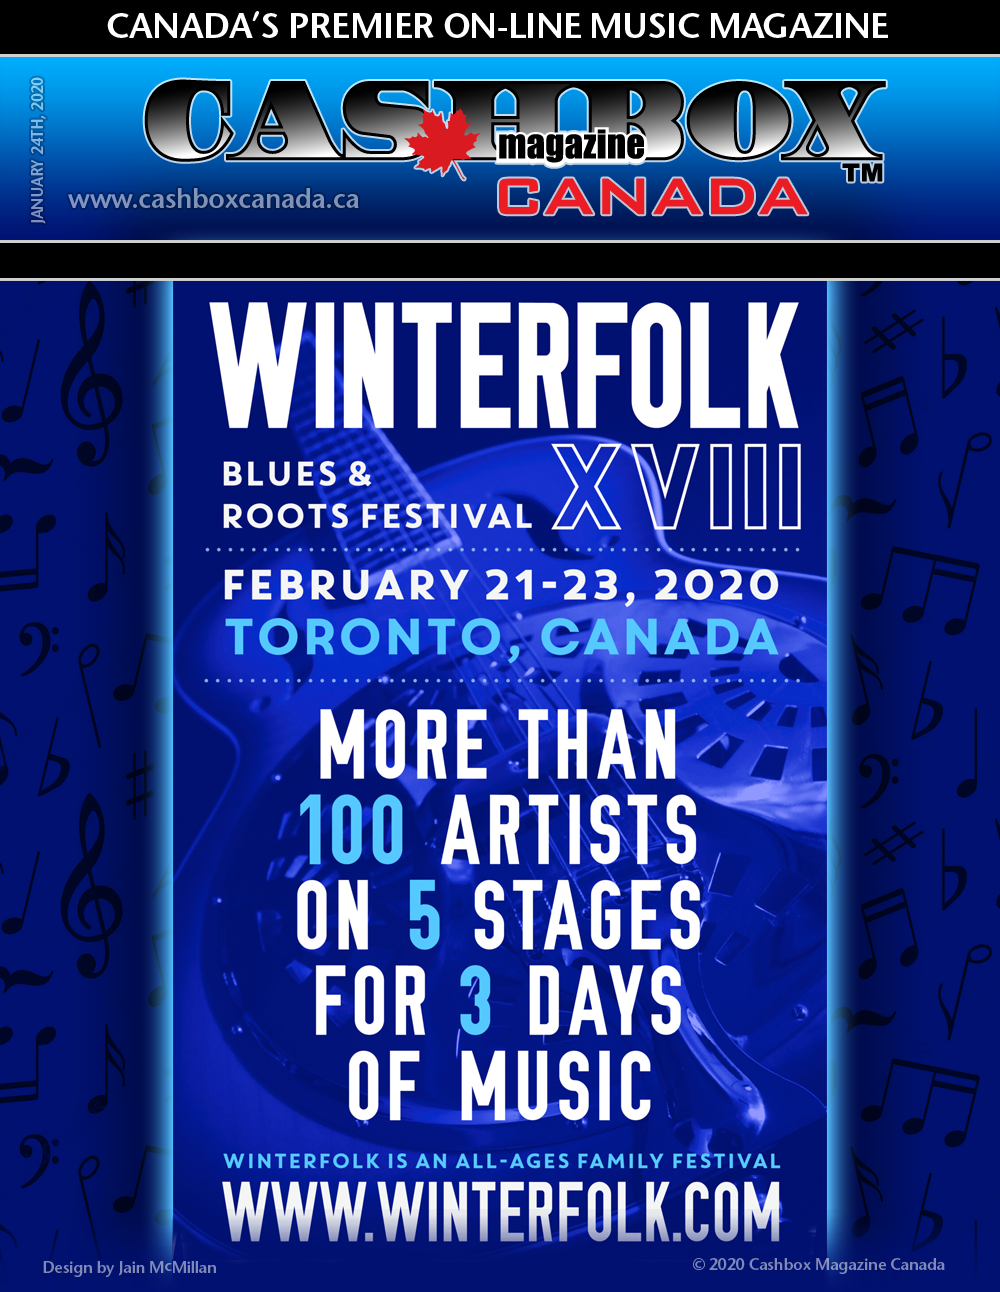 Winterfolk Blues and Roots Festival